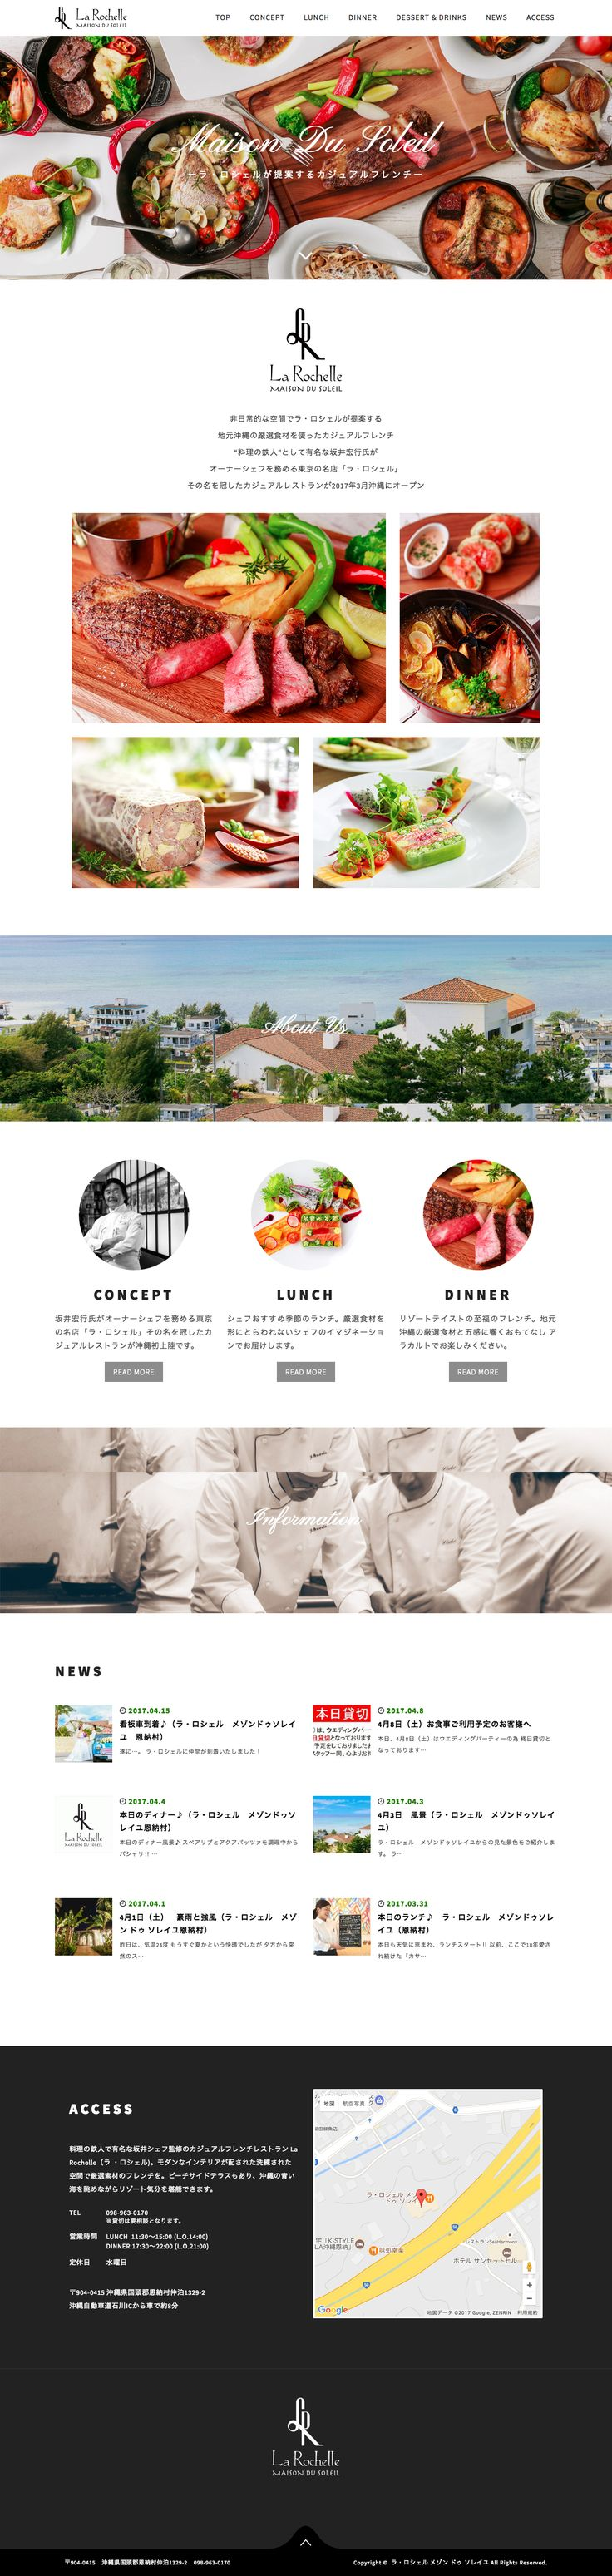 #caferestaurant-web-design #shop #header-fix-layout #key-color-red #bg-color-white #Japanese #Flat-design #Bootstrap #Parallax #Hero-Header #Photographic #Natural